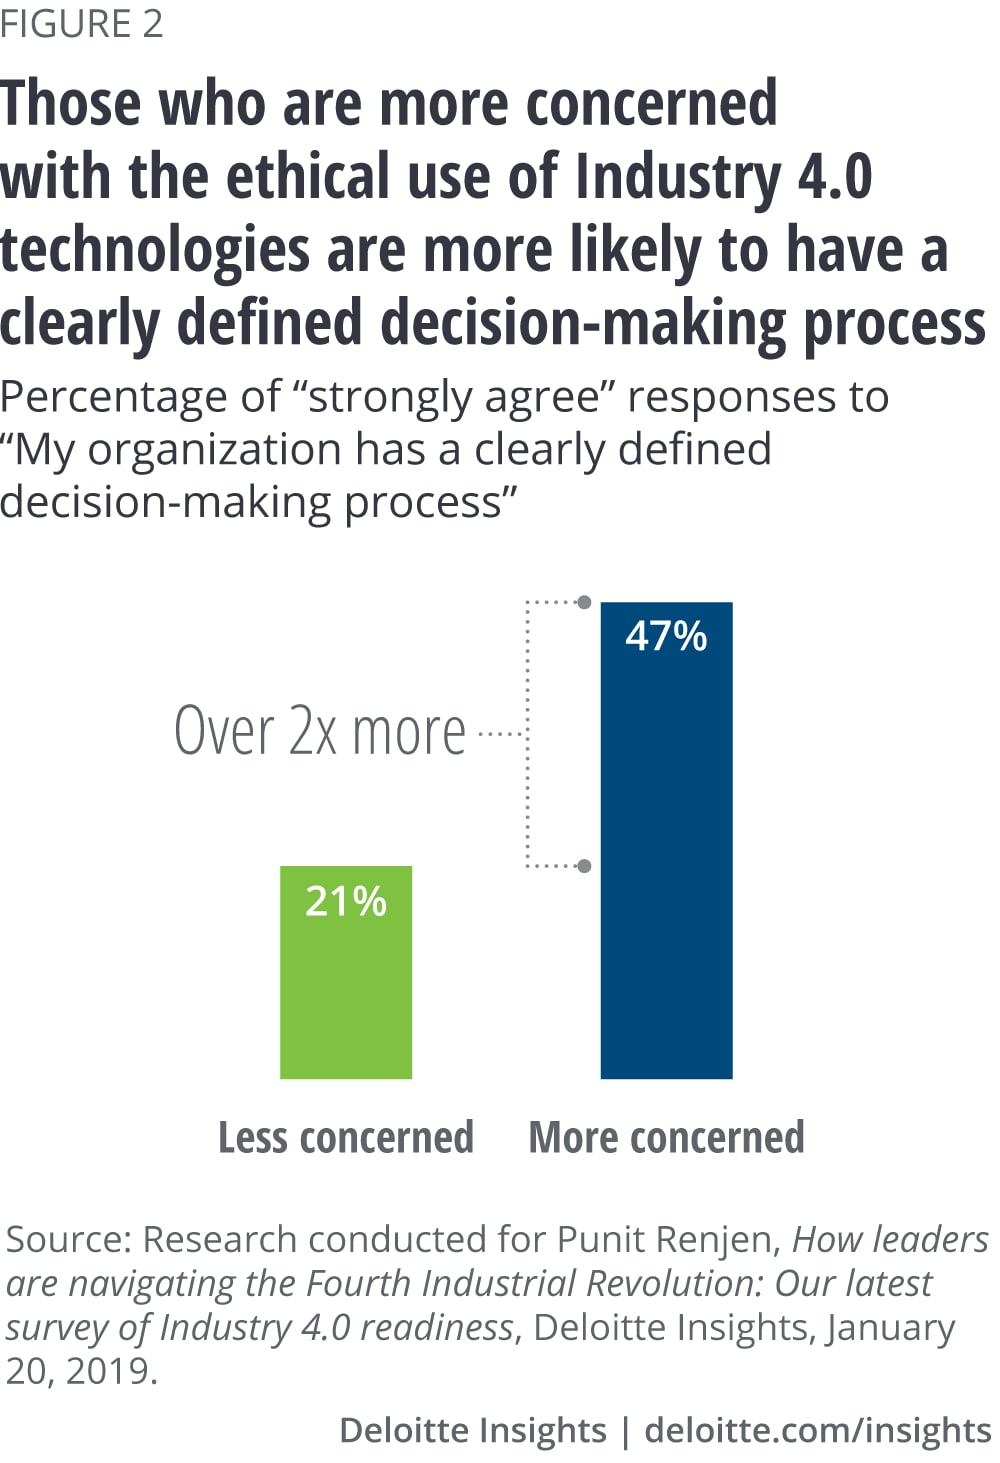 Those who are more concerned with the ethical use of Industry 4.0 technologies are more likely to have a clearly defined decision-making process